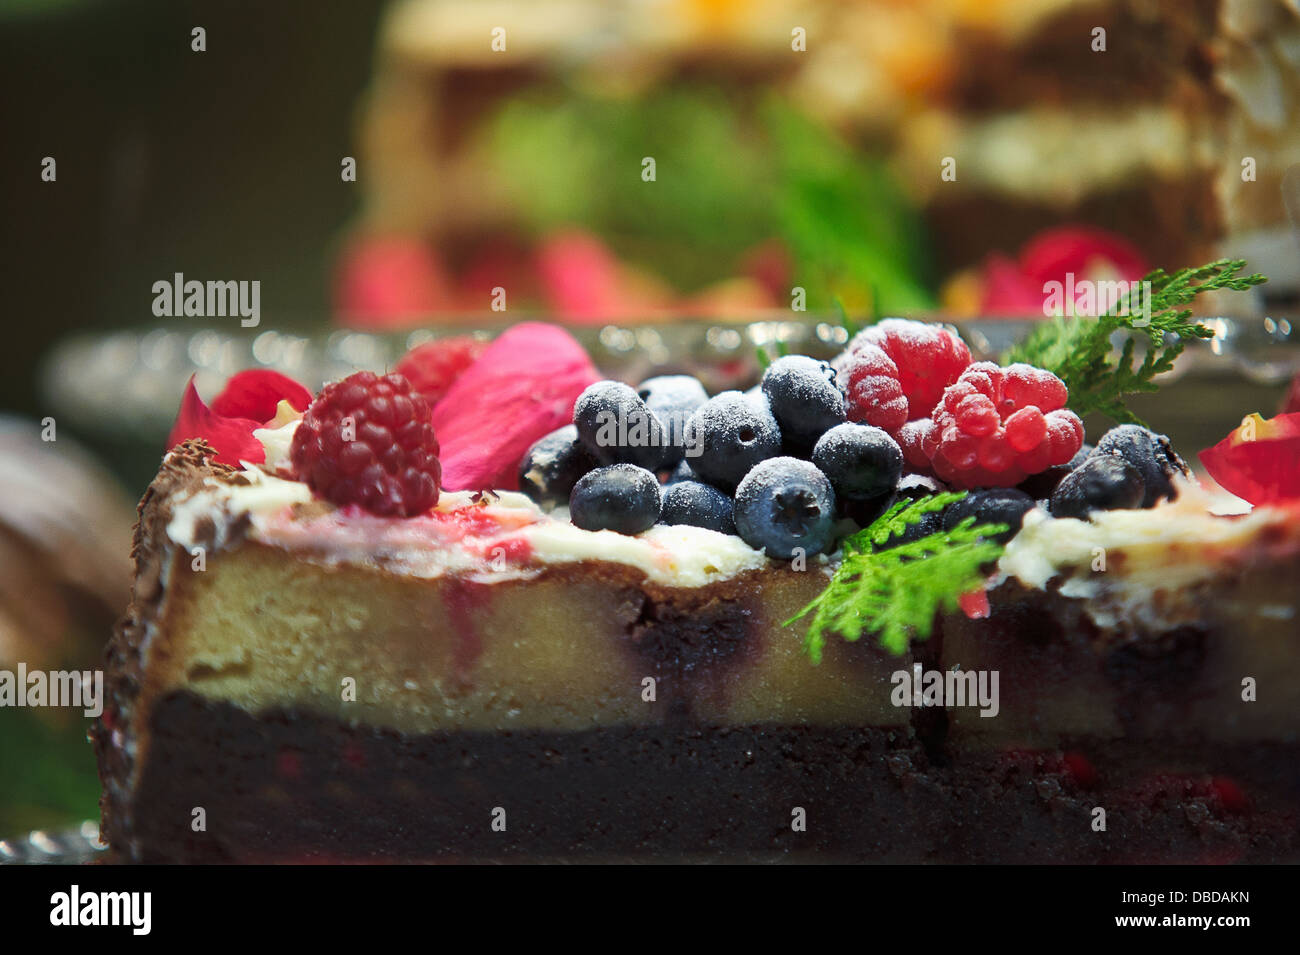 A baked cheesecake topped with cream and berries ready to eat - Stock Image